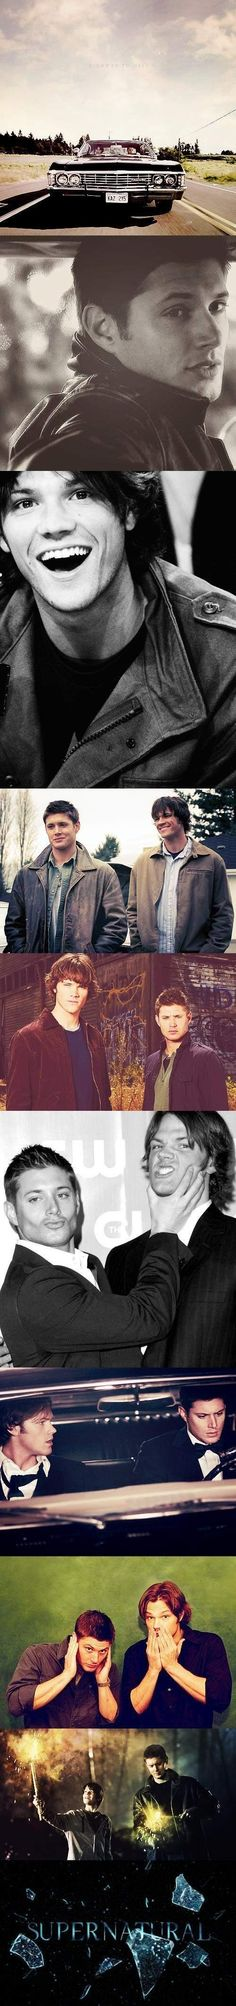 Supernatural Collage